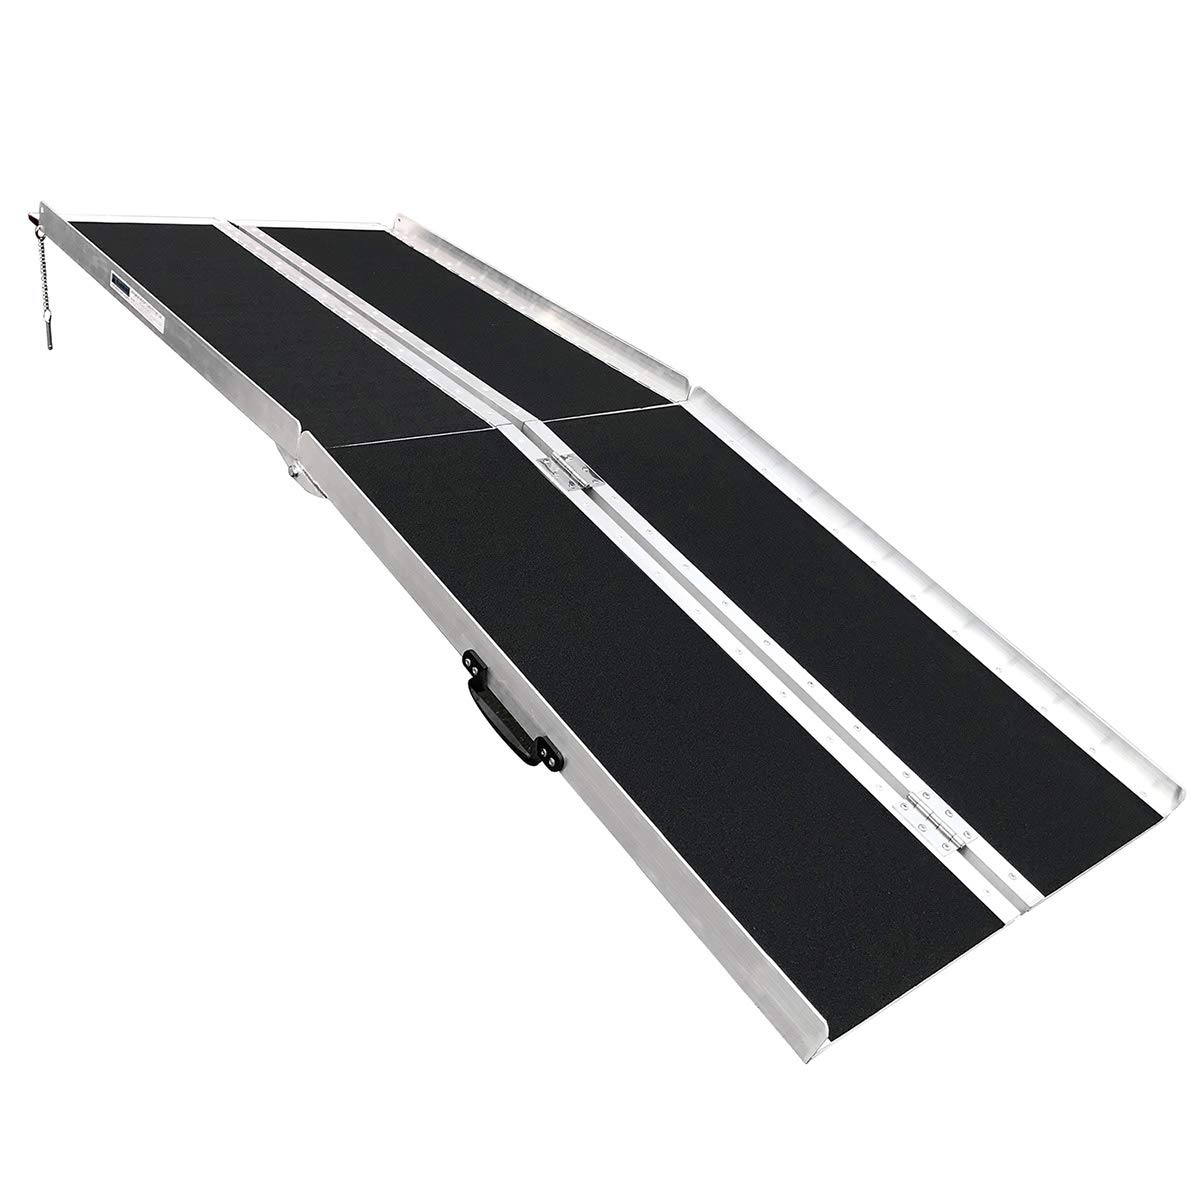 Clevr 6' (72'' X 31'') Extra Wide Non-Skid Aluminum Wheelchair Ramp, Lightweight Folding Portable Loading Traction Ramp, Single Fold 31'' Wide Fits Most Wheelchairs Scooters, Holds up to 600 lbs by Clevr